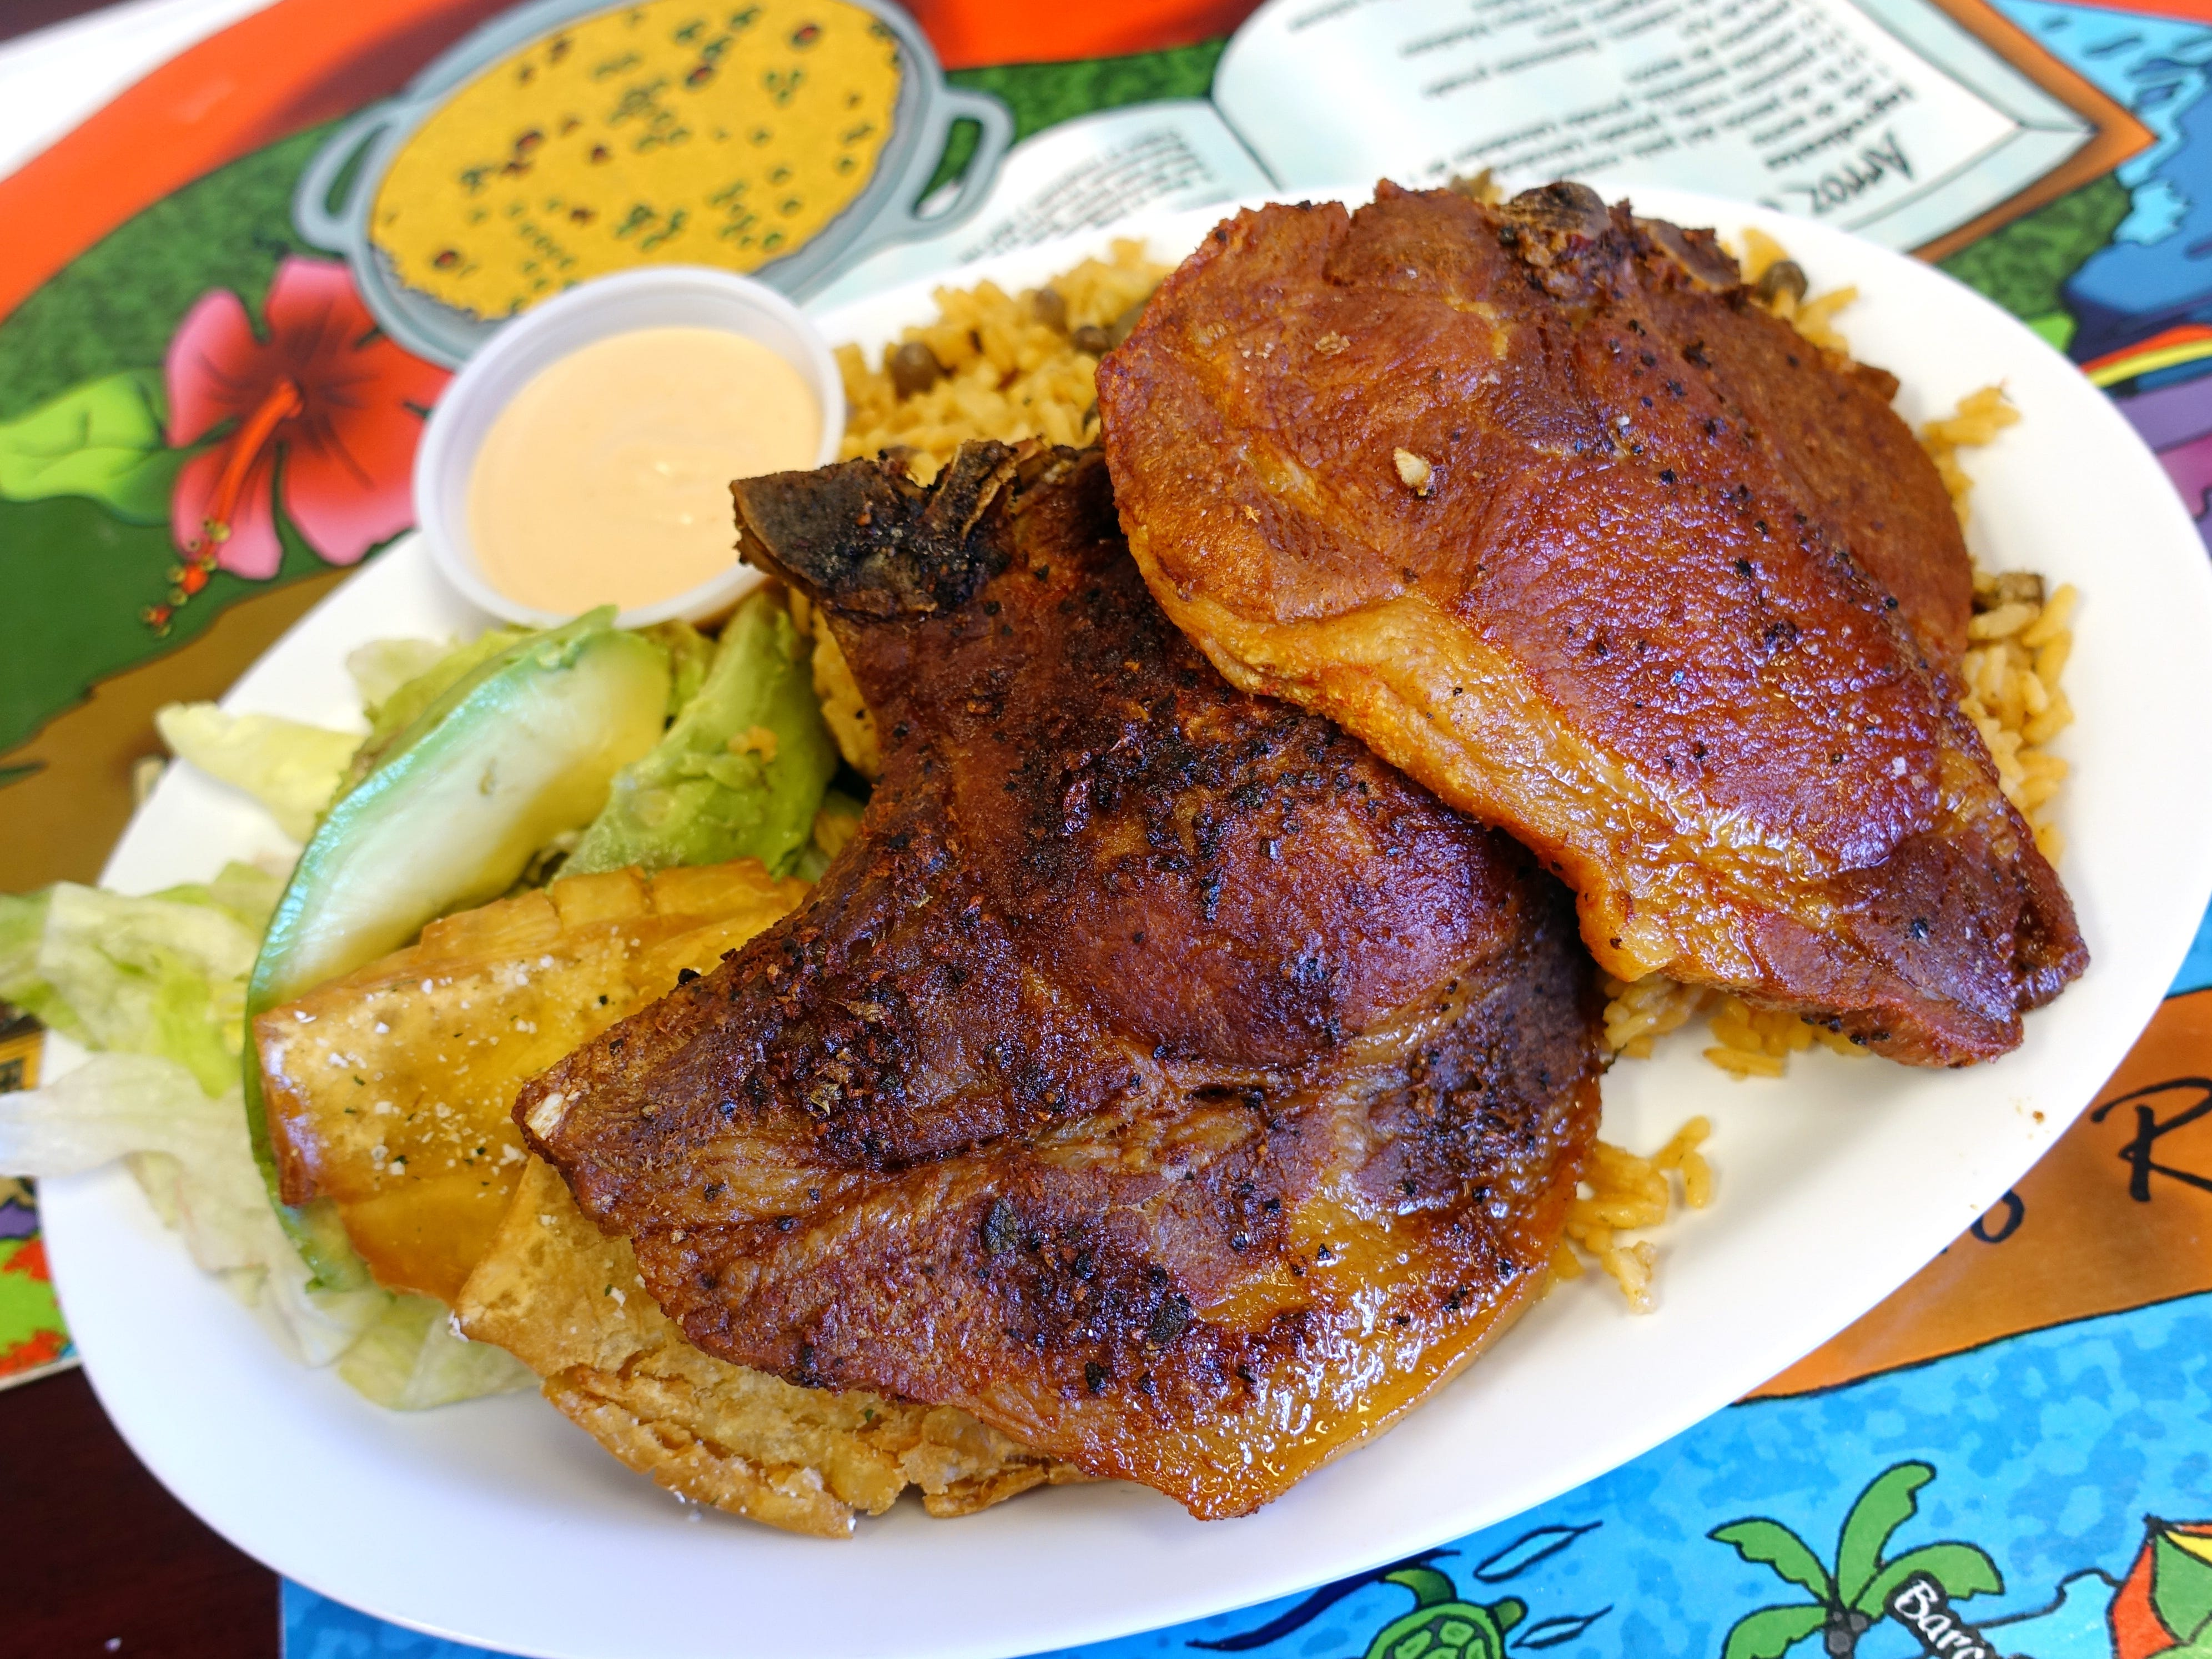 Chuletas fritas with tostones, arroz con gandules and mayoketchup at Sweet Land Cake in Phoenix.